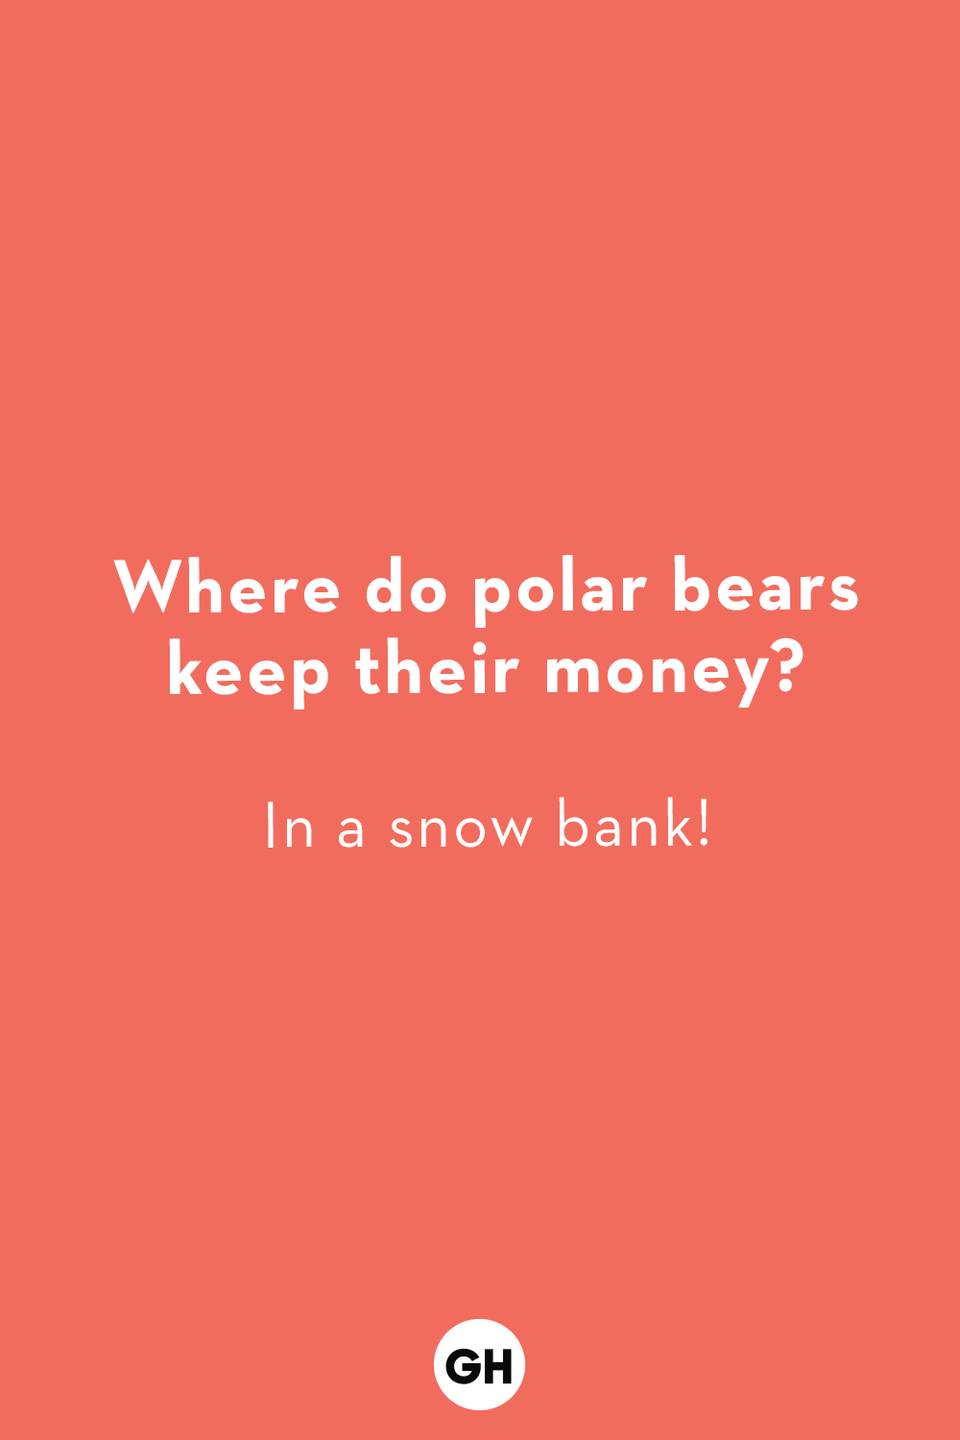 """<p>In a snow bank!</p><p><strong>RELATED: </strong><a href=""""https://www.goodhousekeeping.com/life/parenting/g28541976/best-kids-quotes/"""" rel=""""nofollow noopener"""" target=""""_blank"""" data-ylk=""""slk:The 40 Best Kids Quotes, Because Raising Children Goes Faster Than You'd Think"""" class=""""link rapid-noclick-resp"""">The 40 Best Kids Quotes, Because Raising Children Goes Faster Than You'd Think</a></p>"""